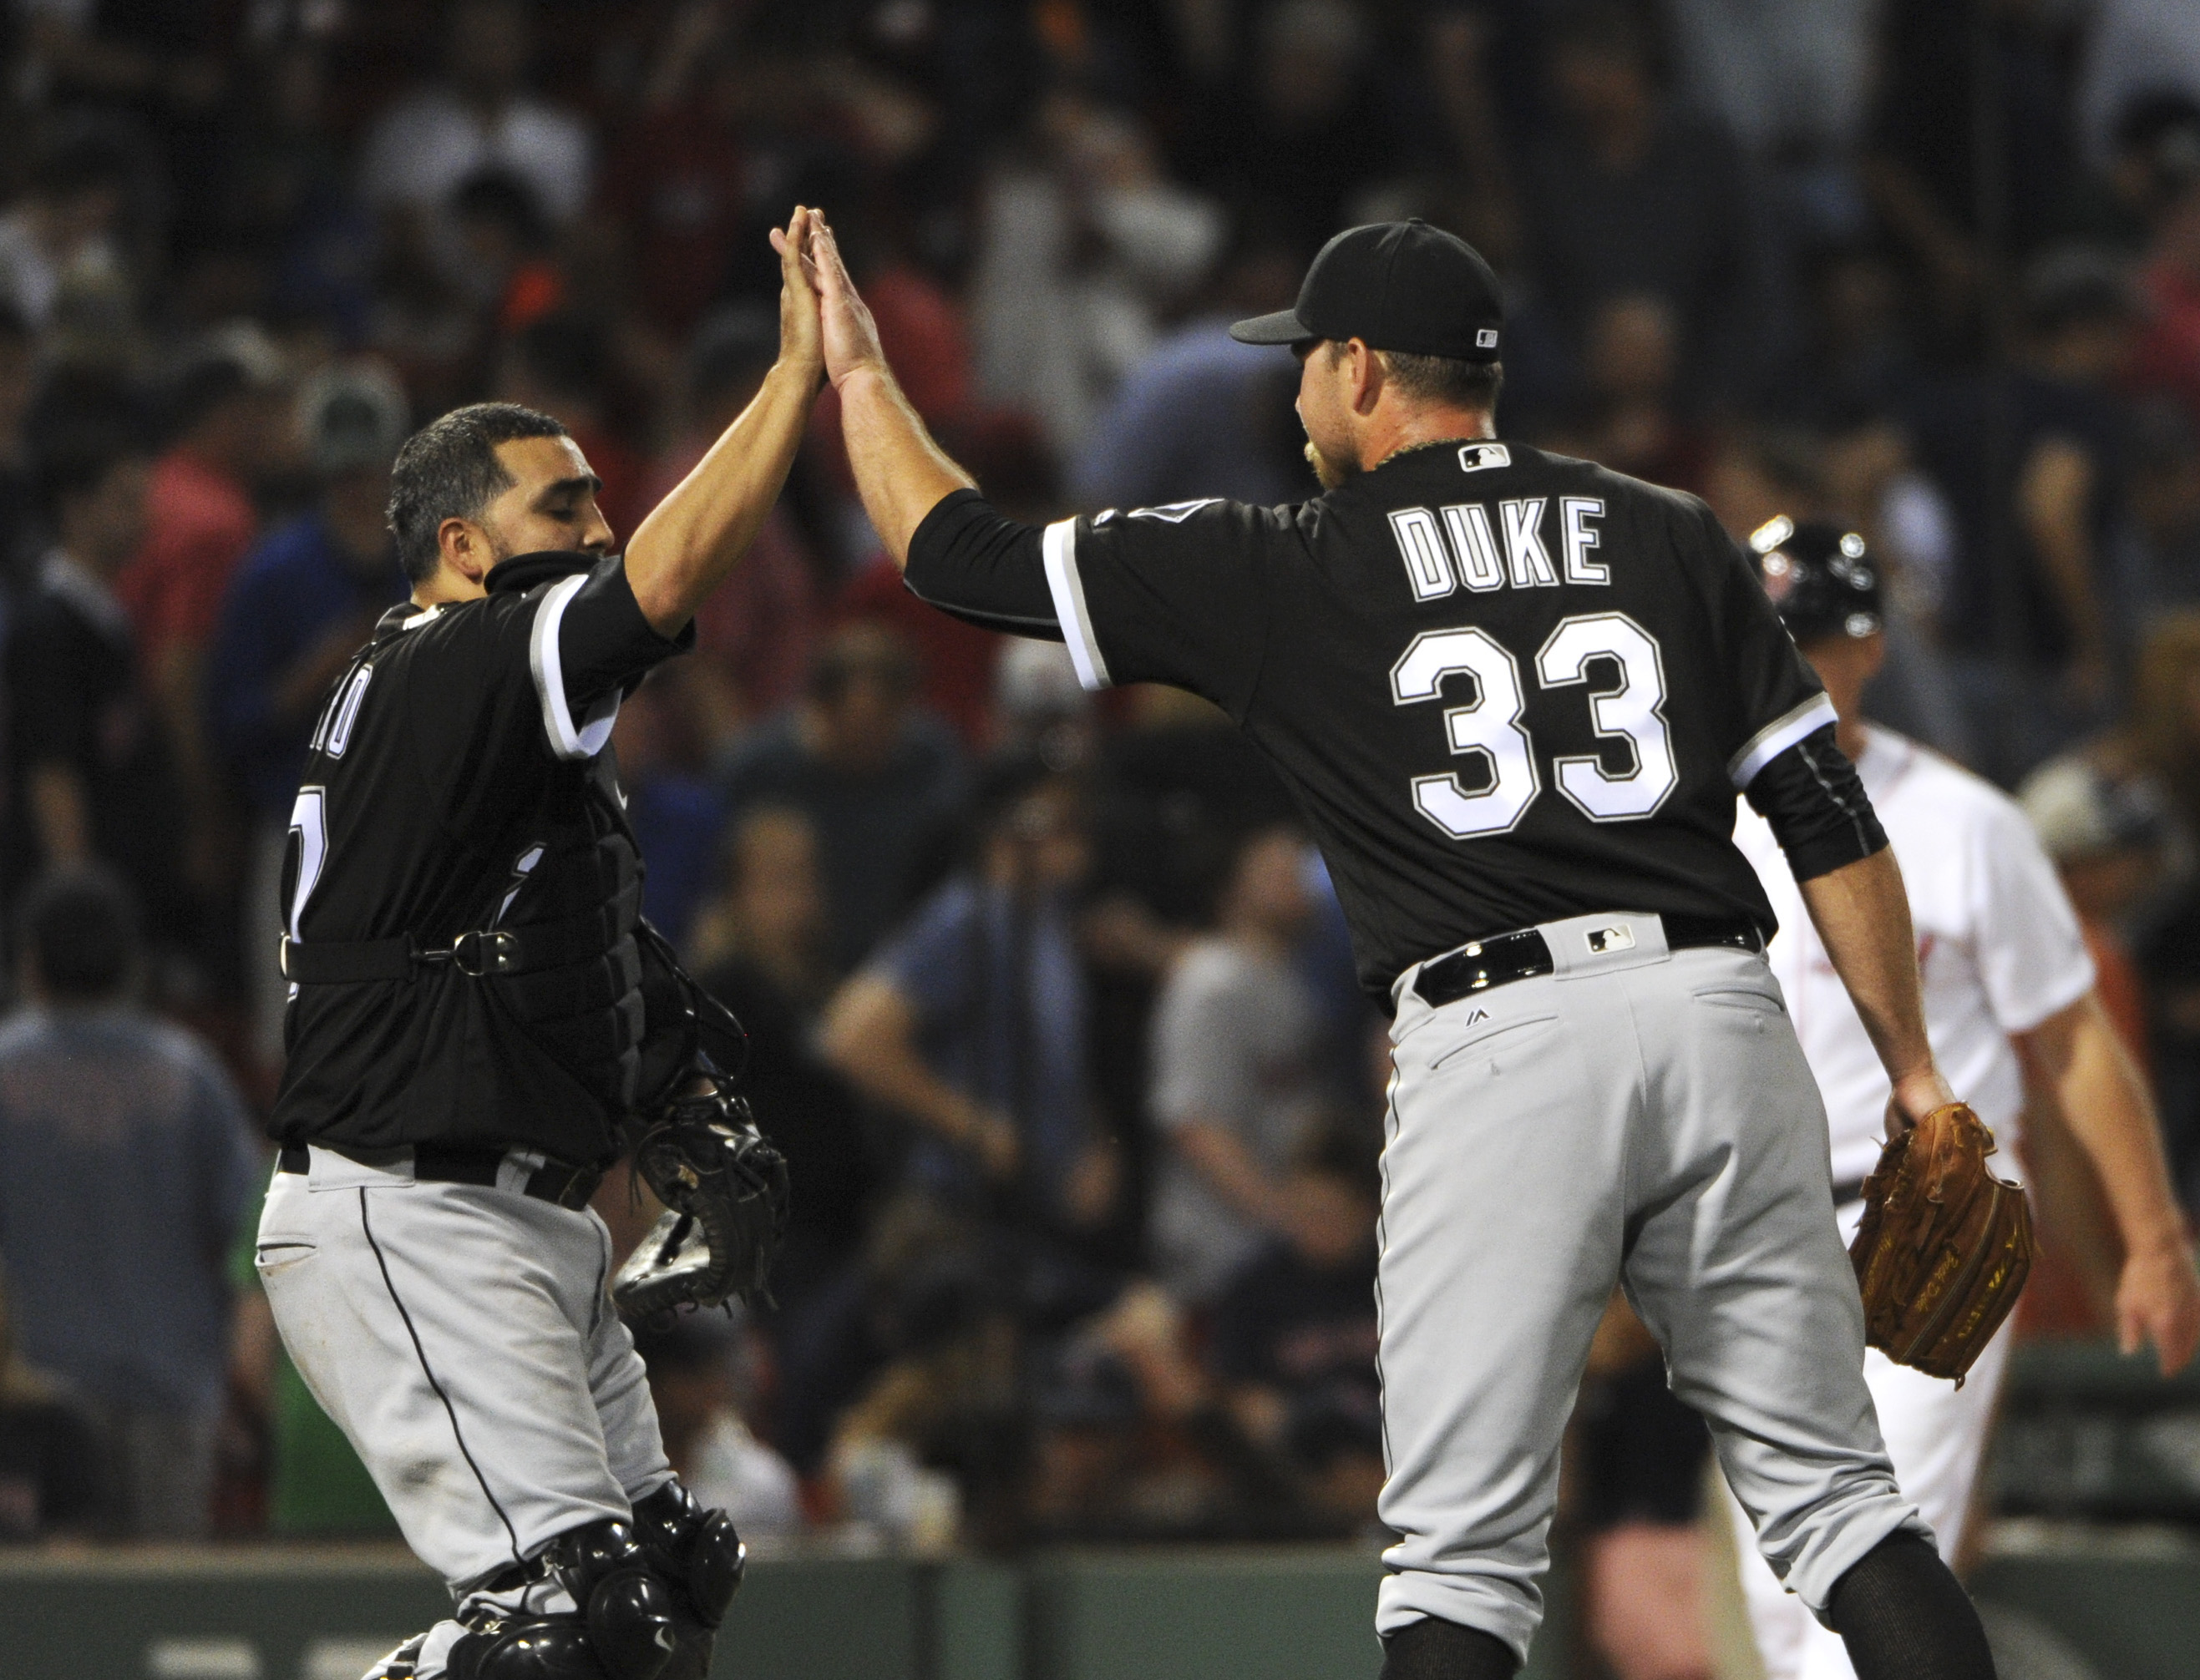 MLB: Chicago White Sox at Boston Red Sox